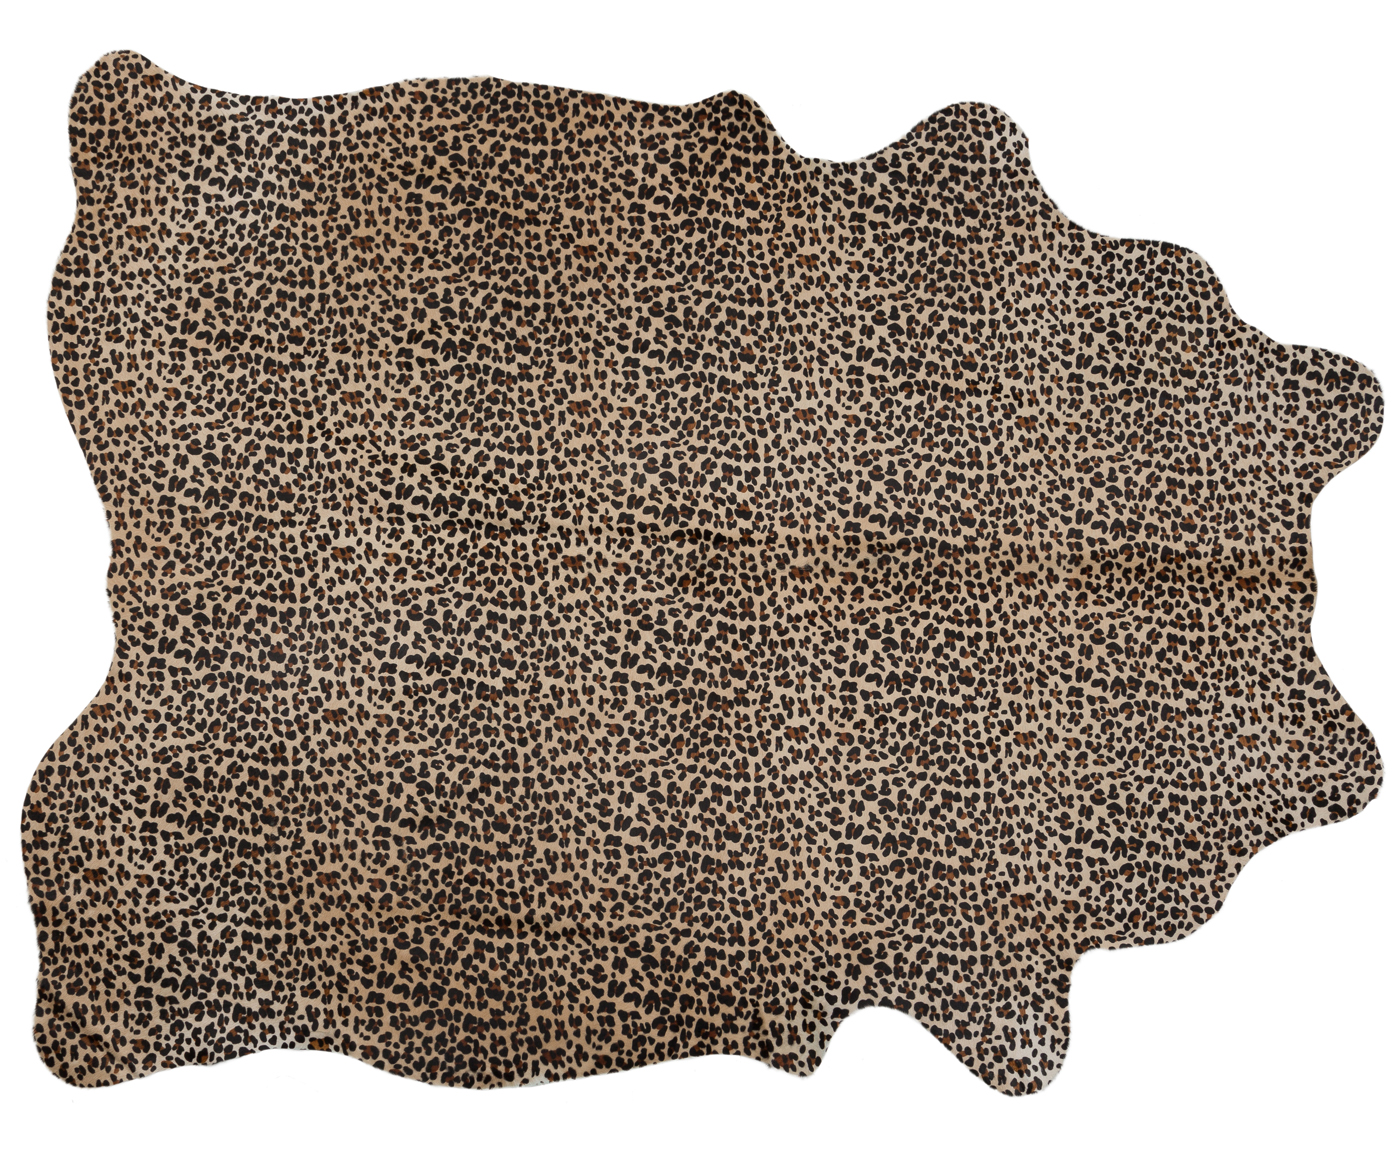 Kuhfell-Teppich Leopard